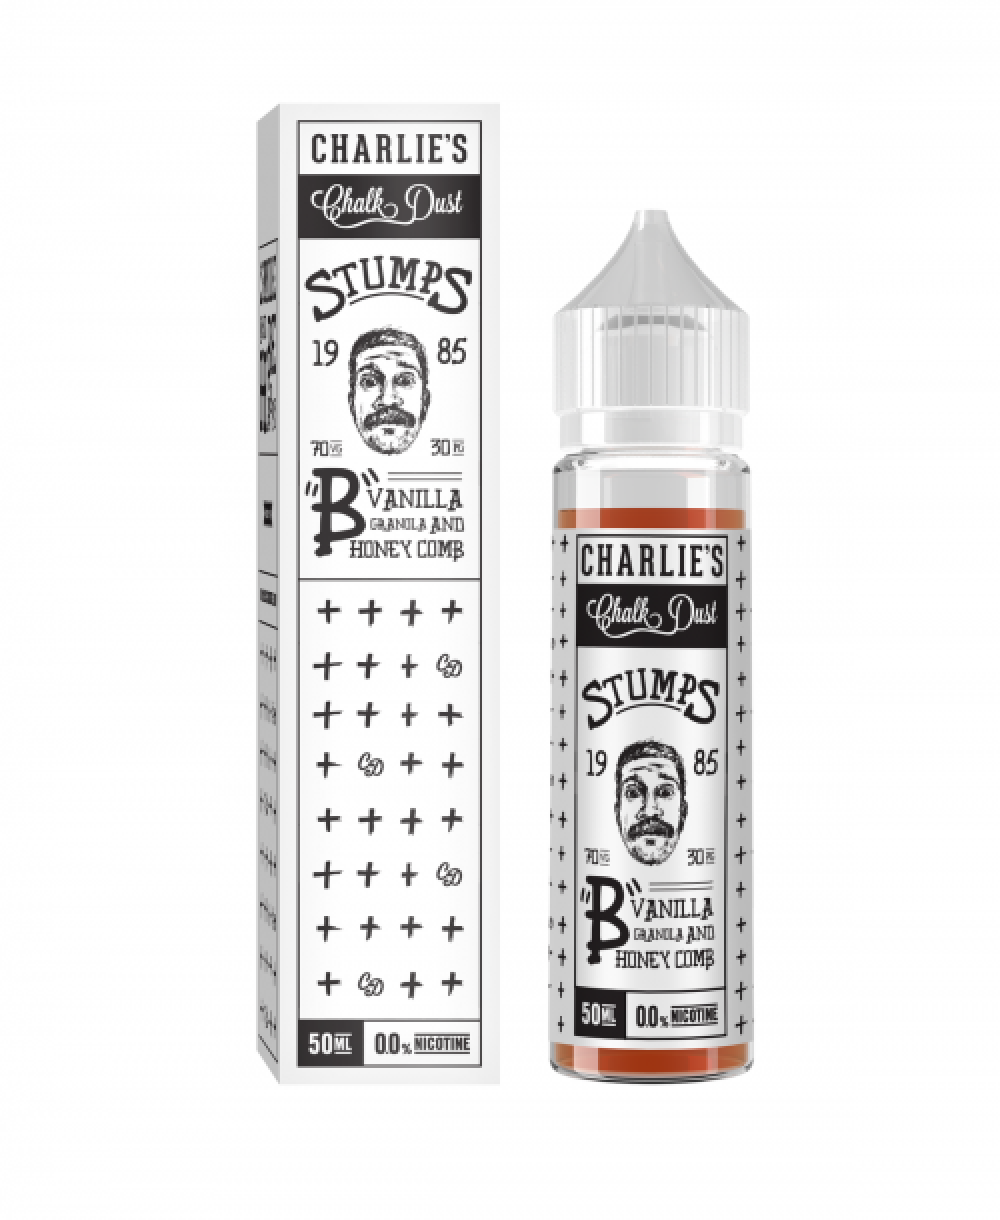 Vanilla Granola and Honey Comb Charlie's Chalk Dust Ejuice